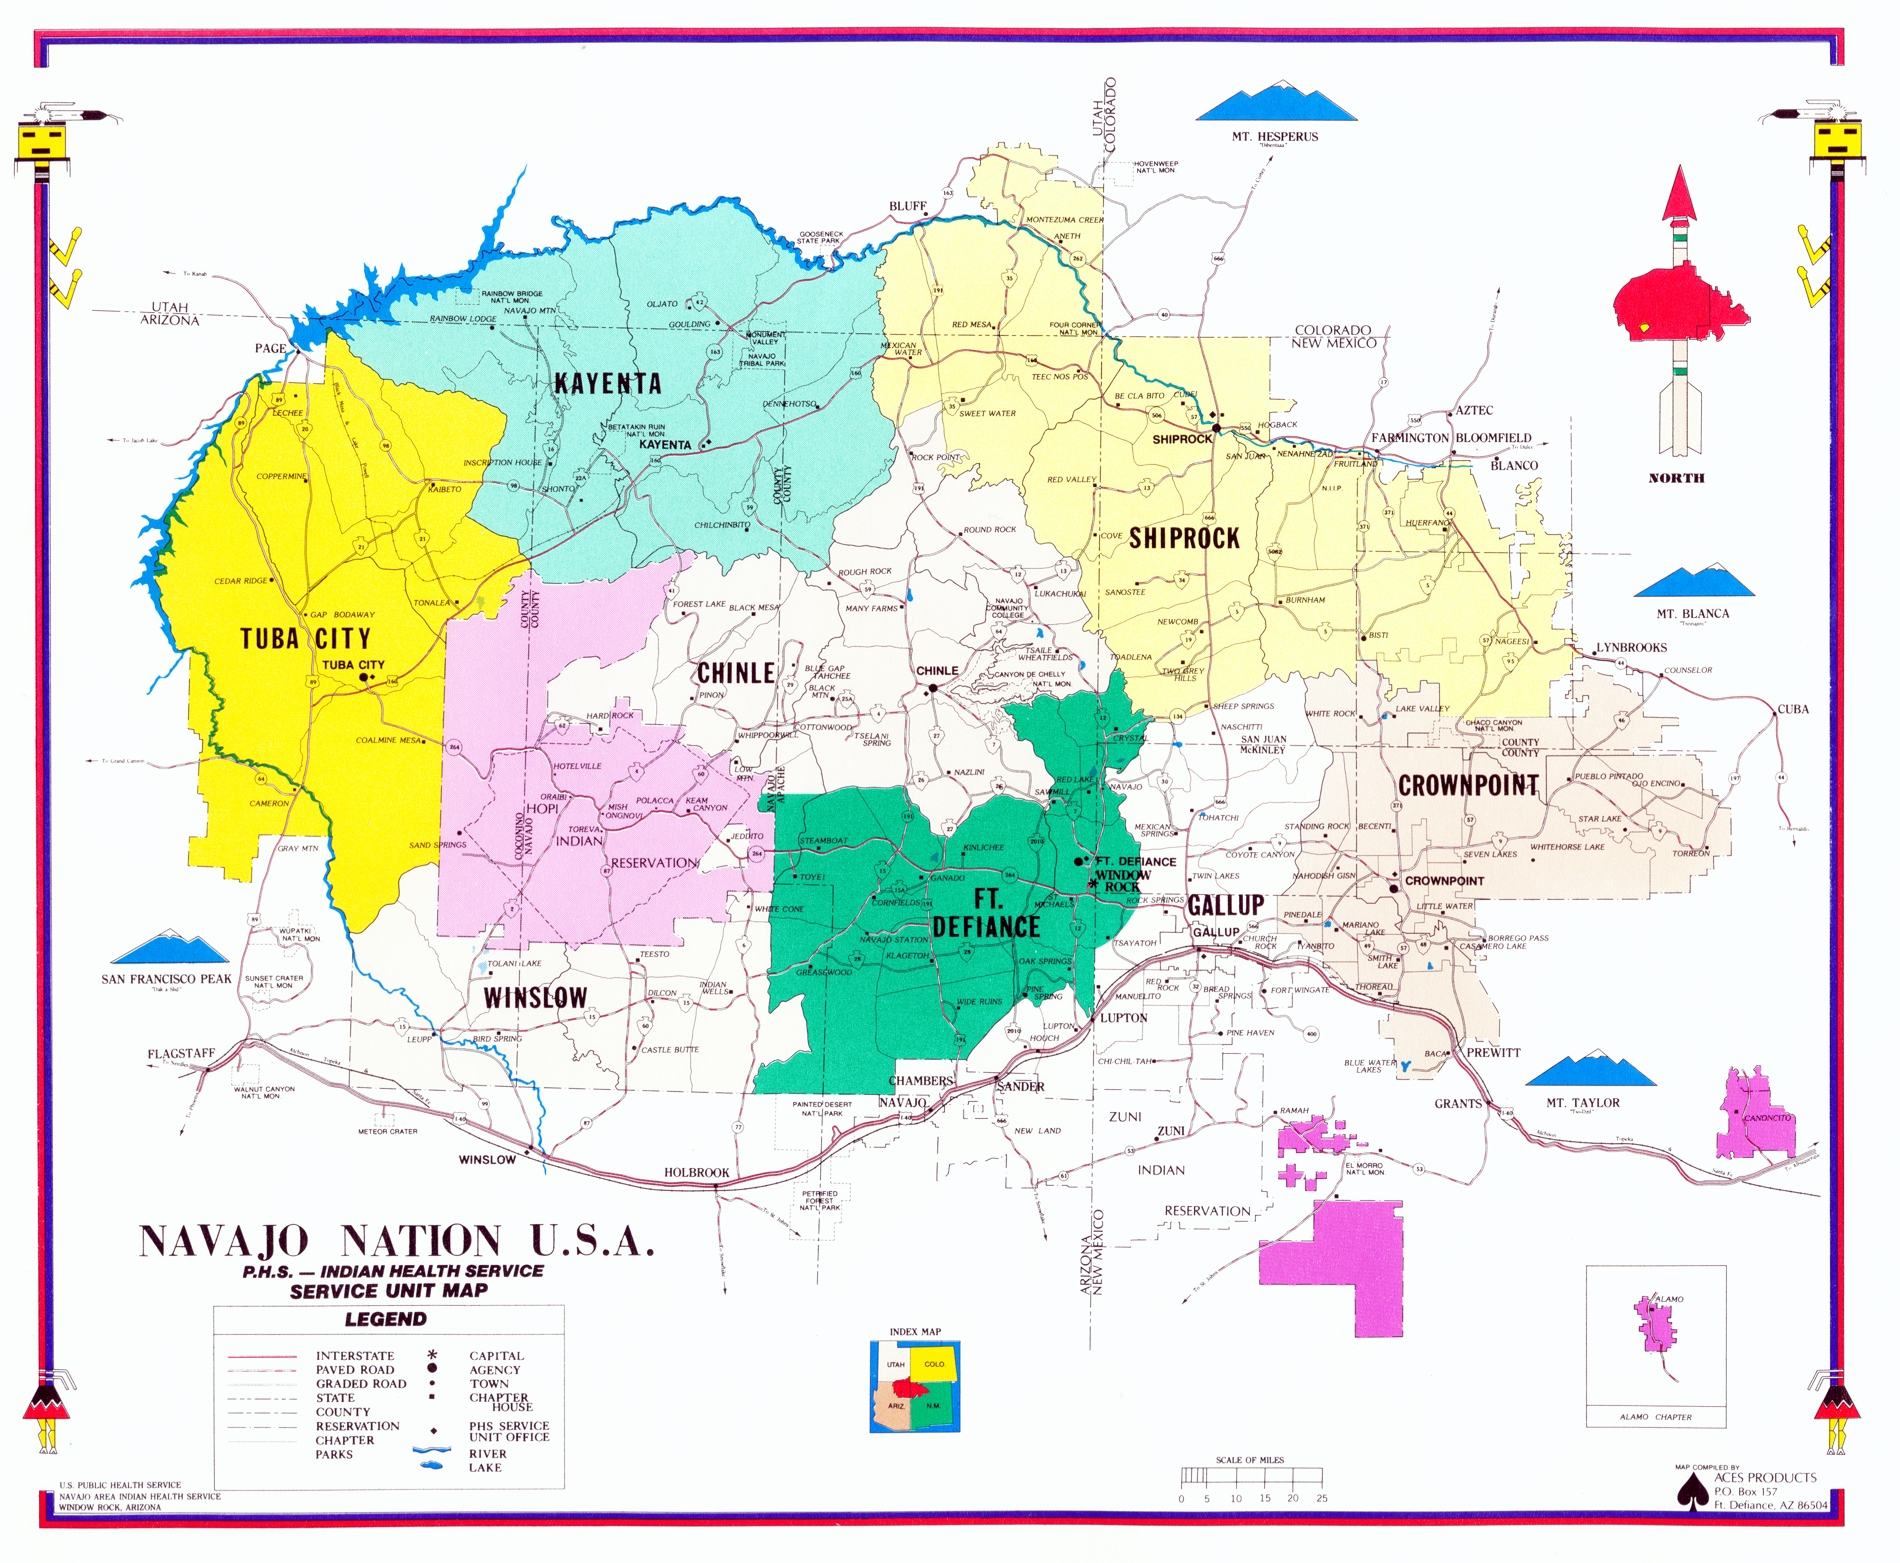 Navajo Area | Indian Health Service (IHS) on